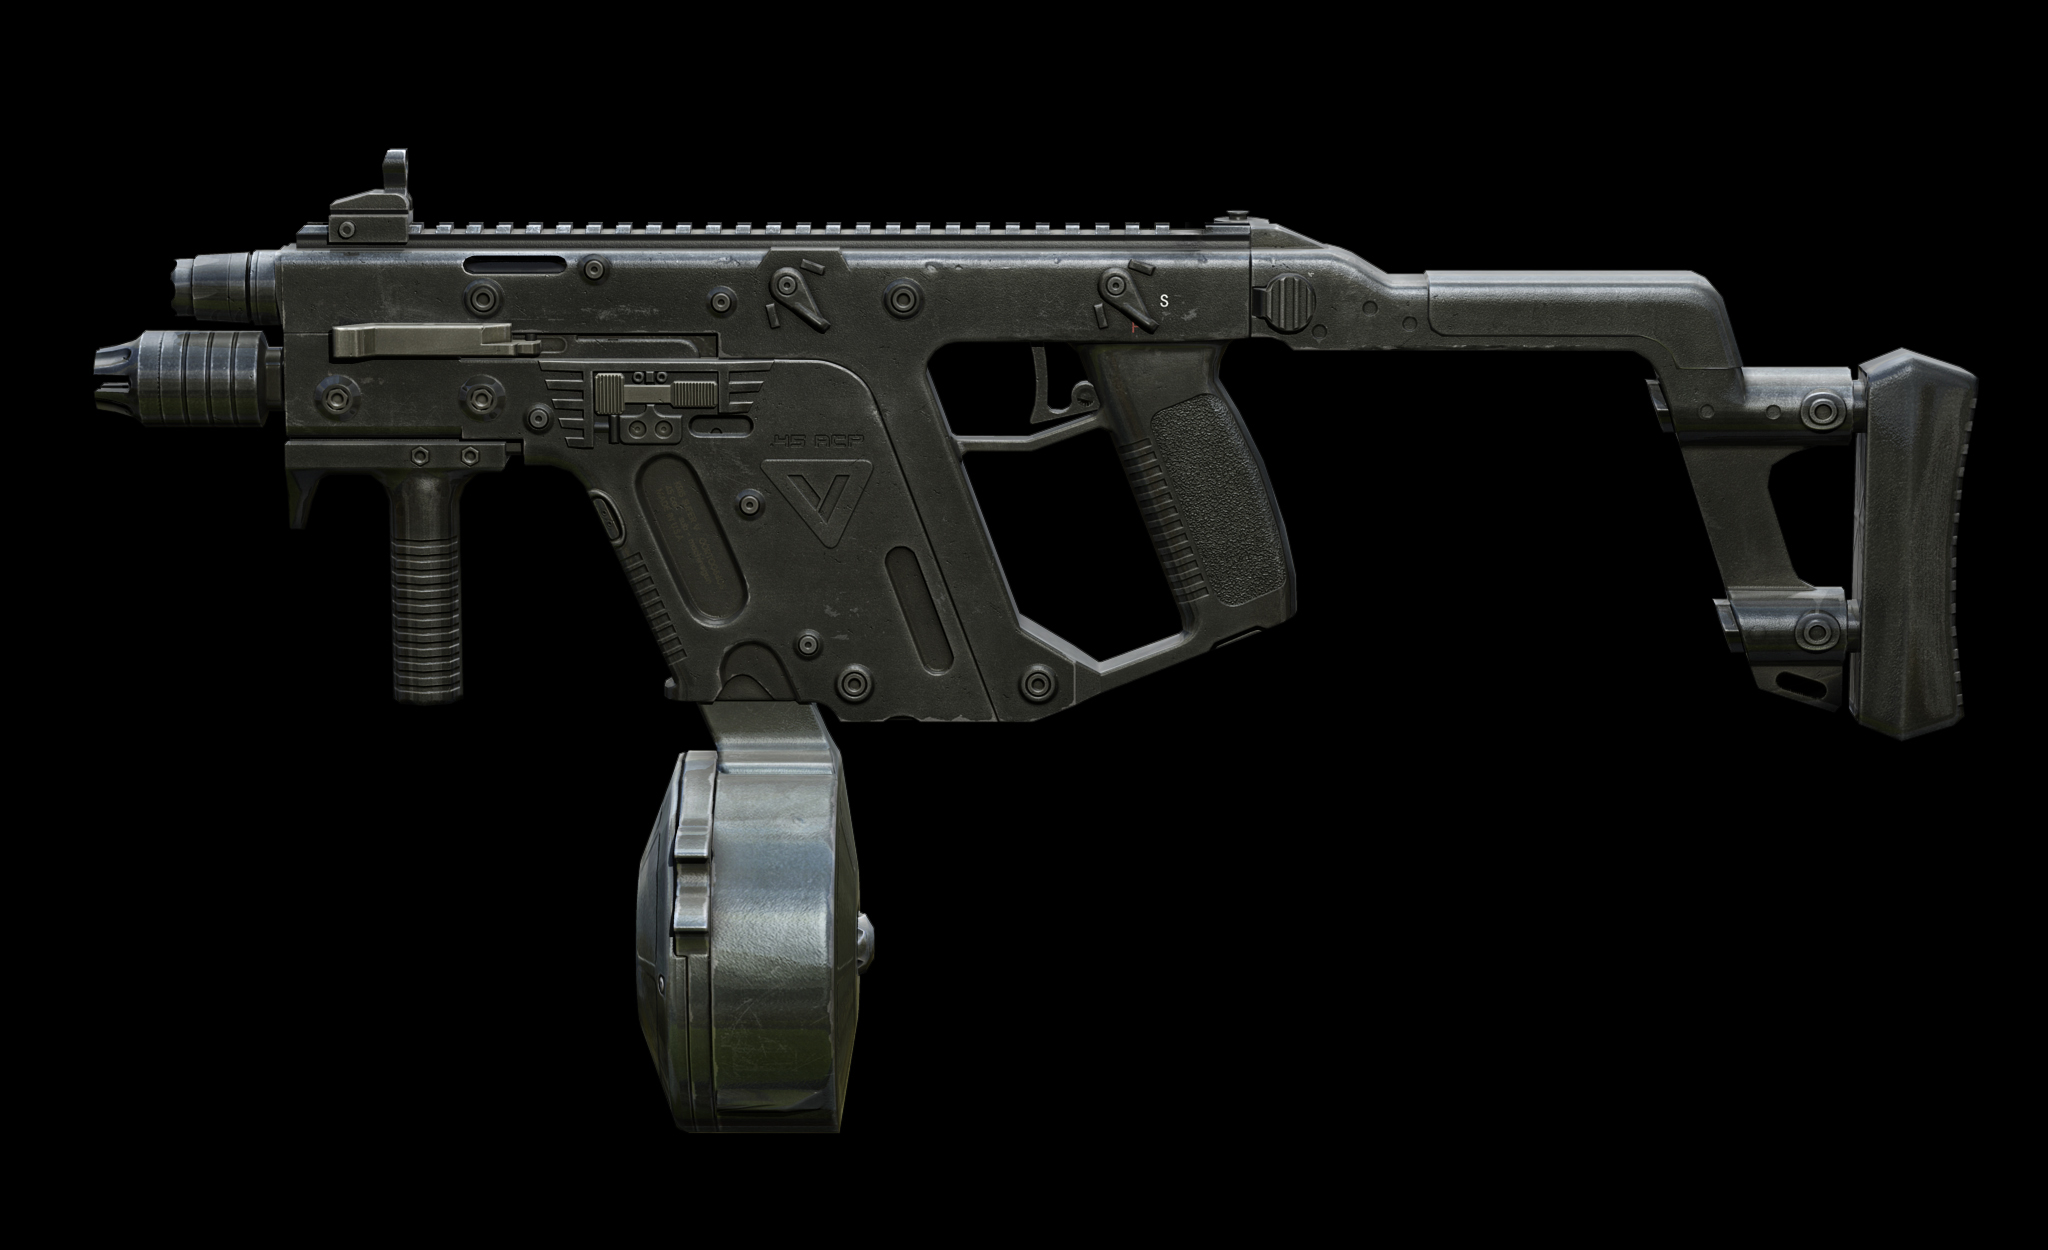 Kriss_Vector_compressed.jpg